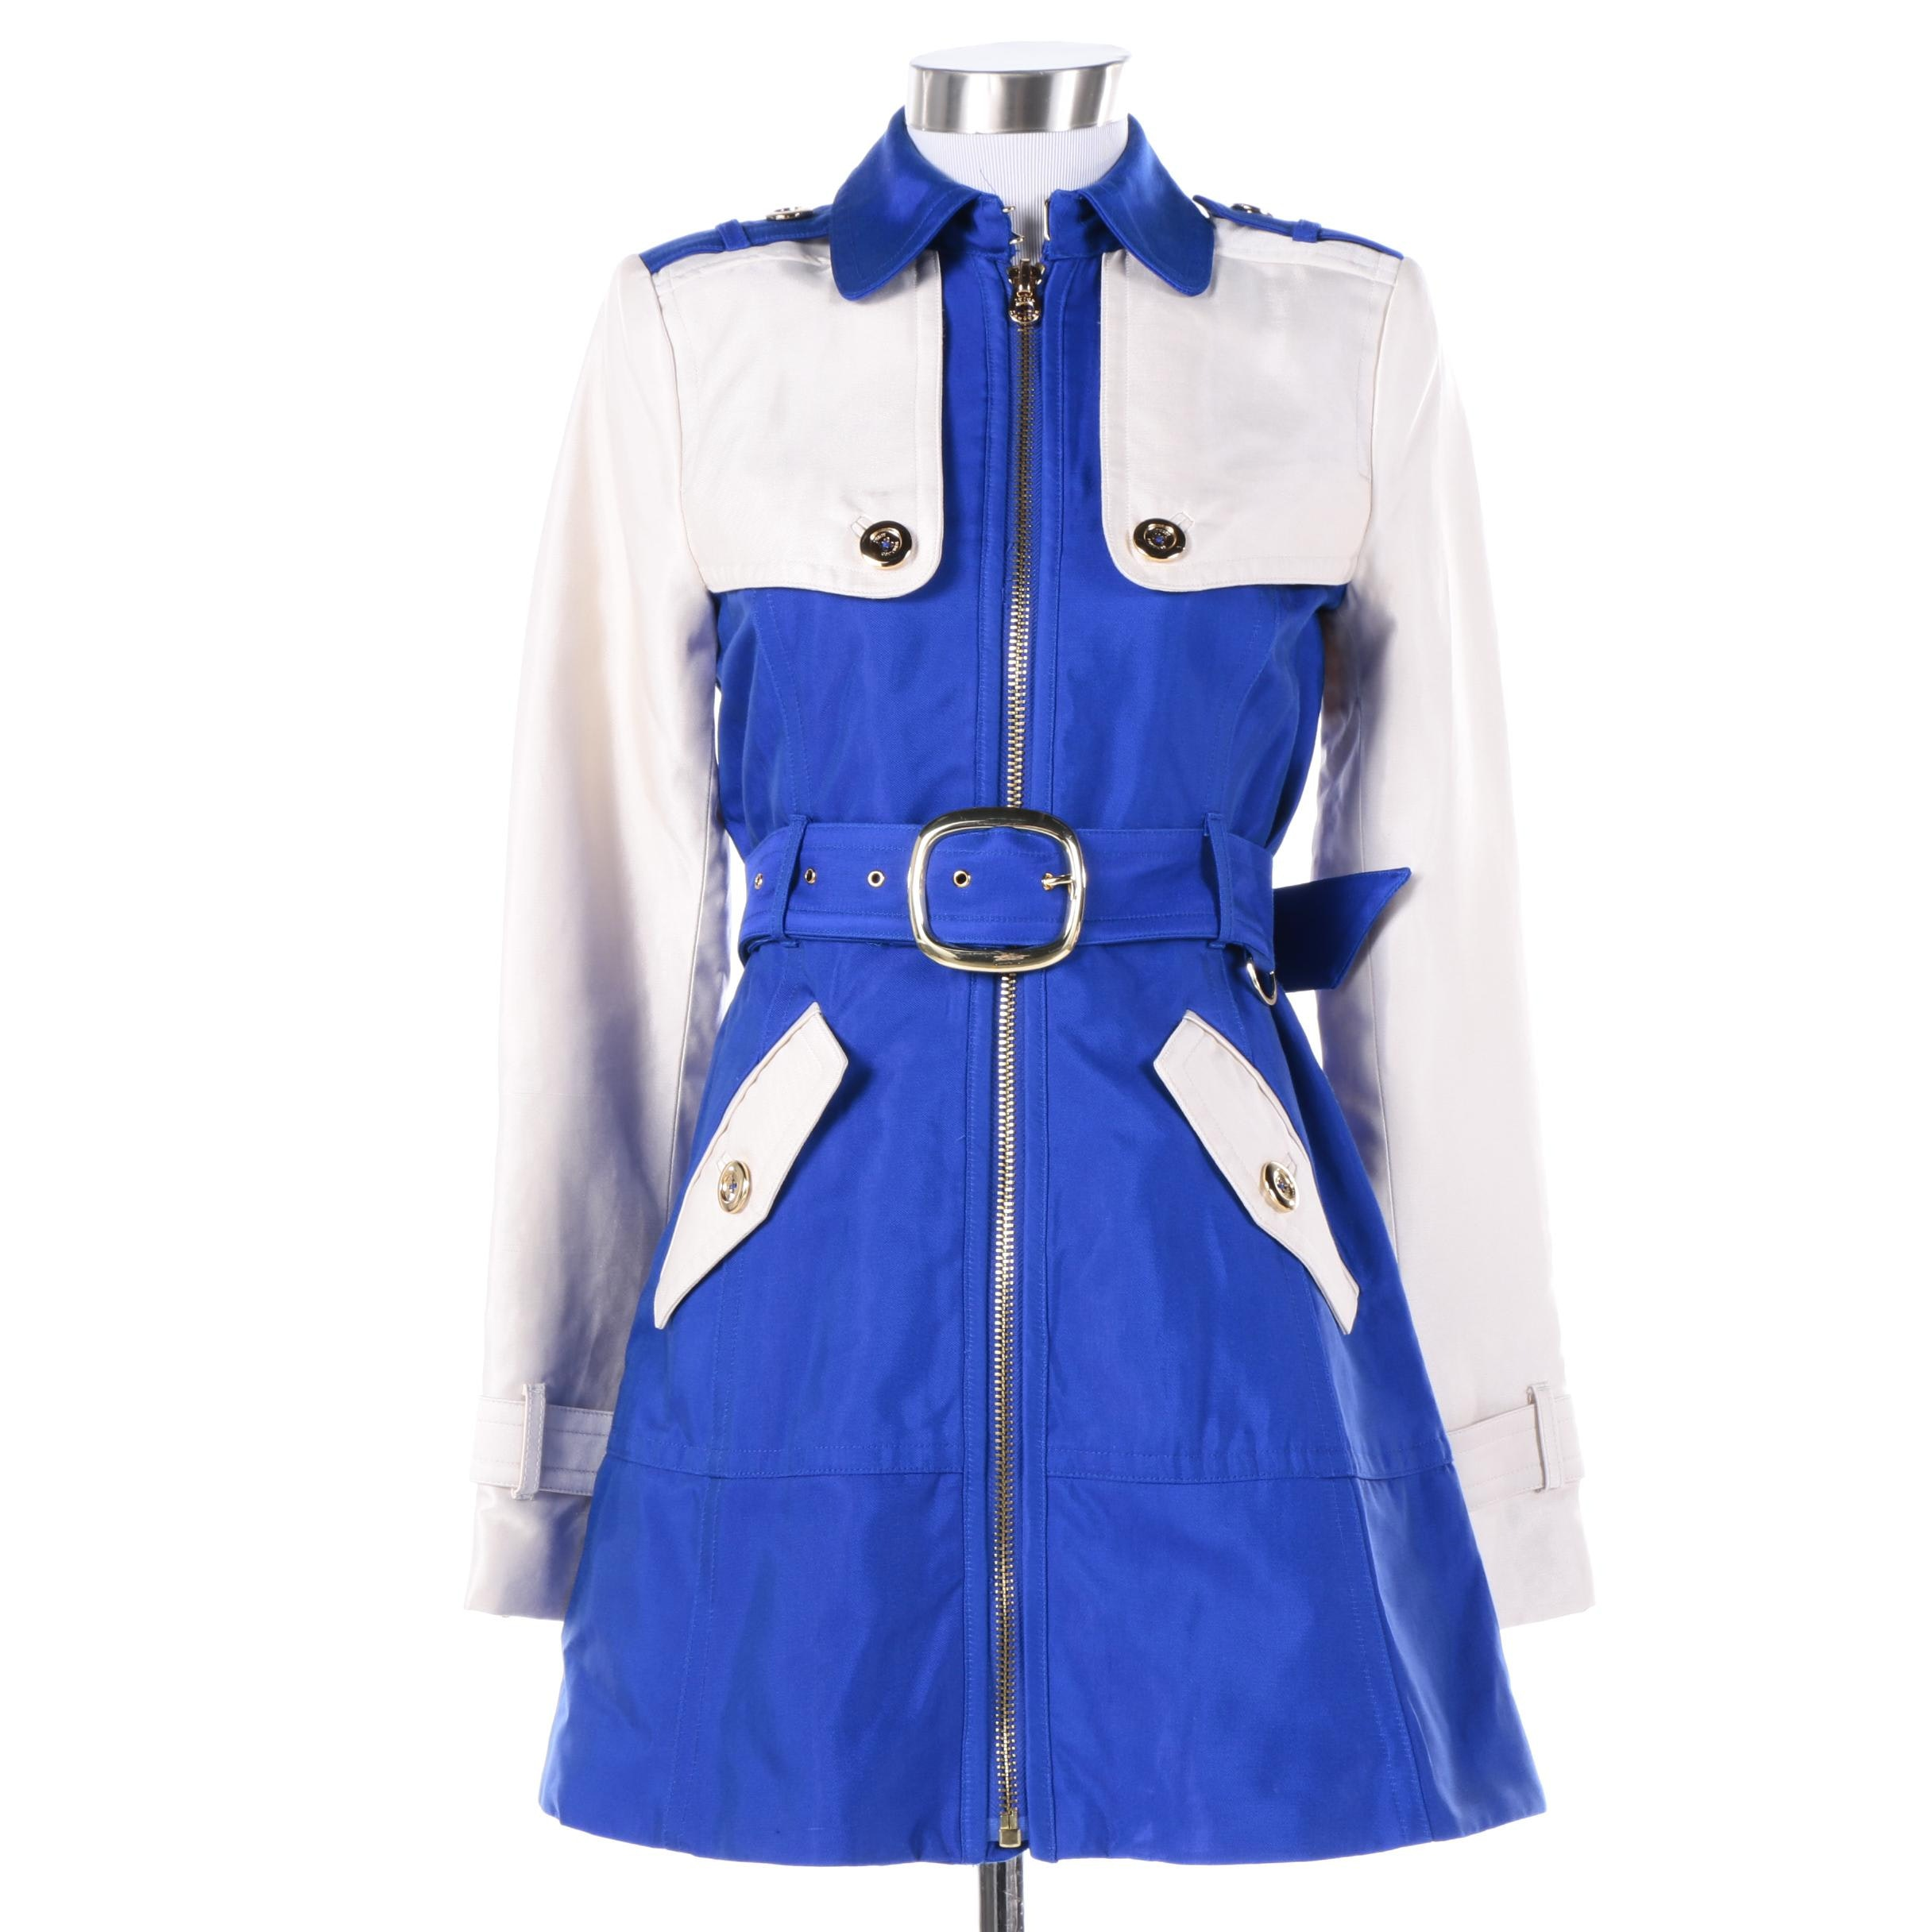 Women's Juicy Couture Blue and White Cotton Blend Jacket